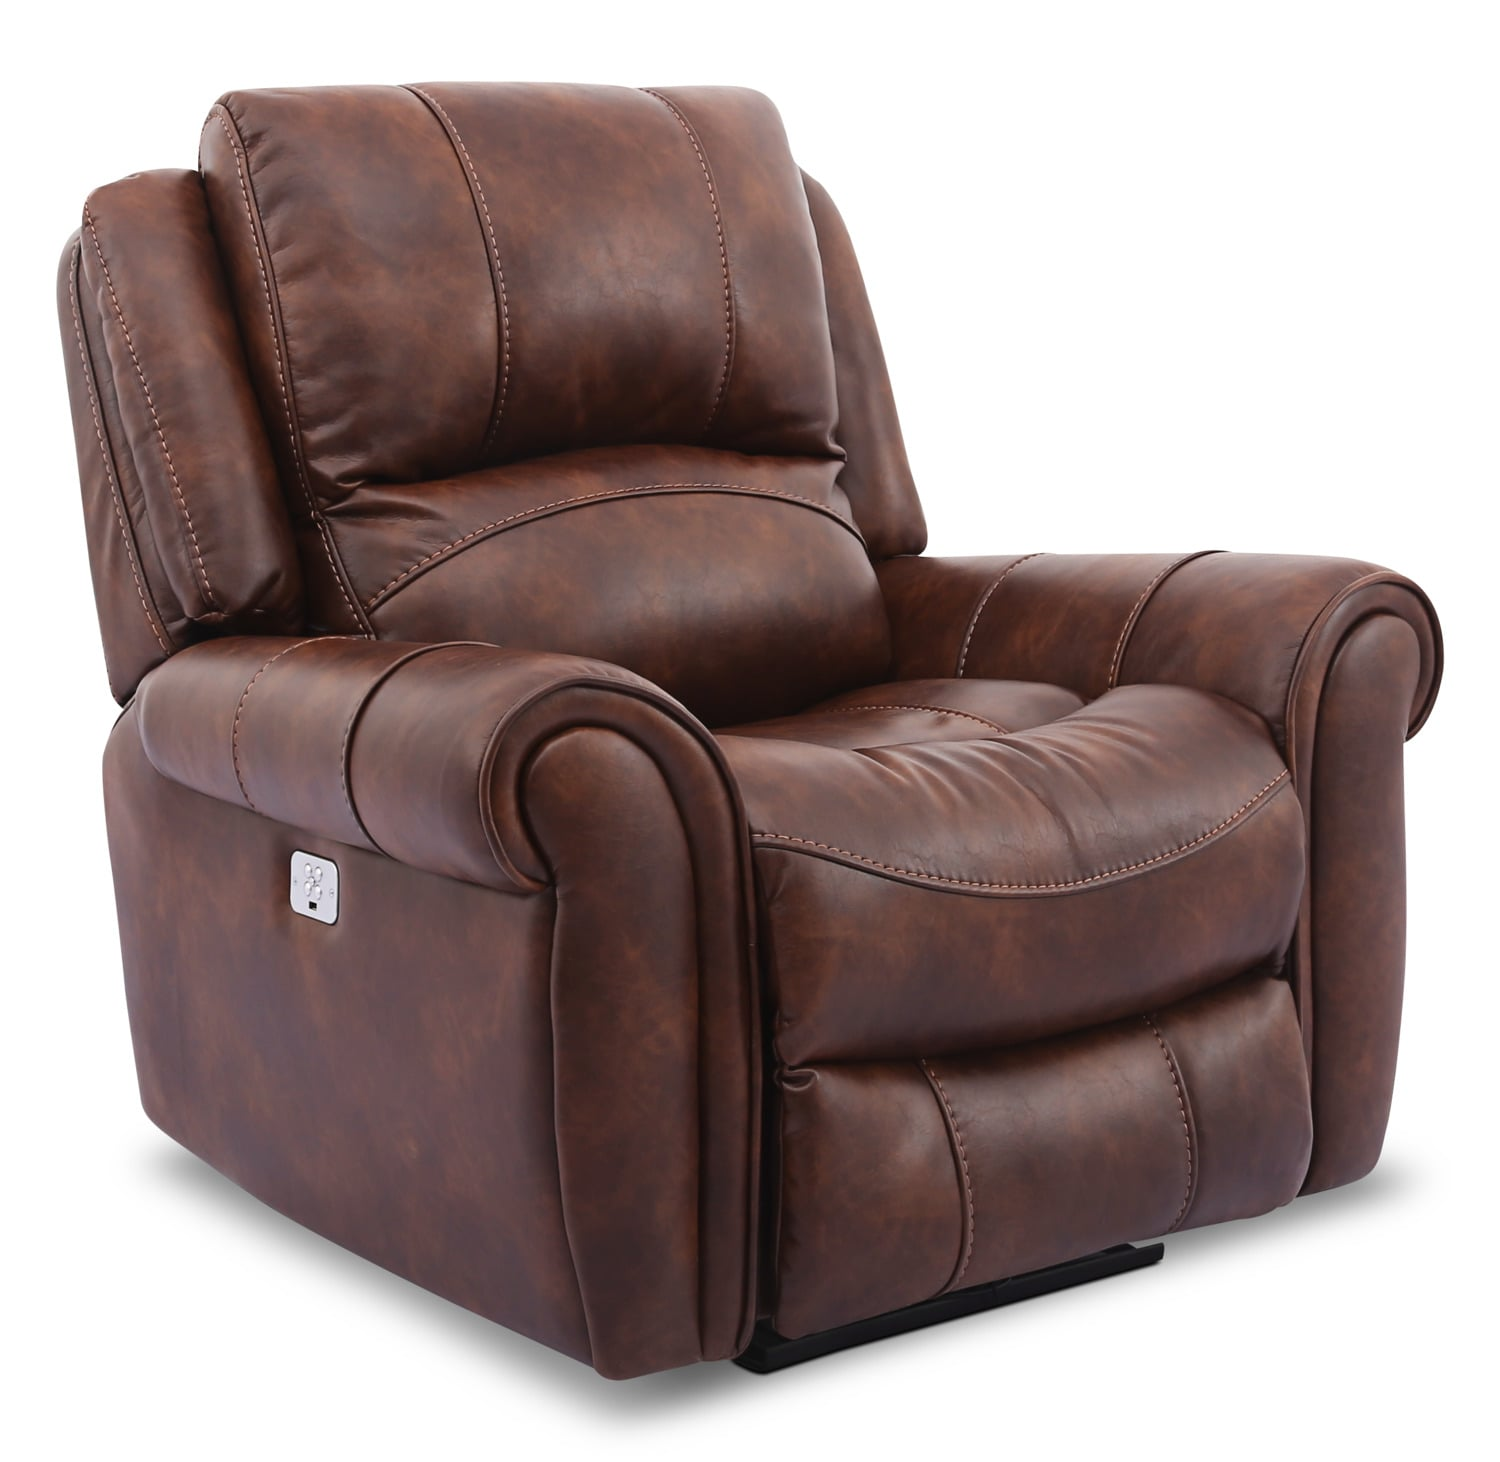 Kane Leather-Look Fabric Power Reclining Chair – Pecan